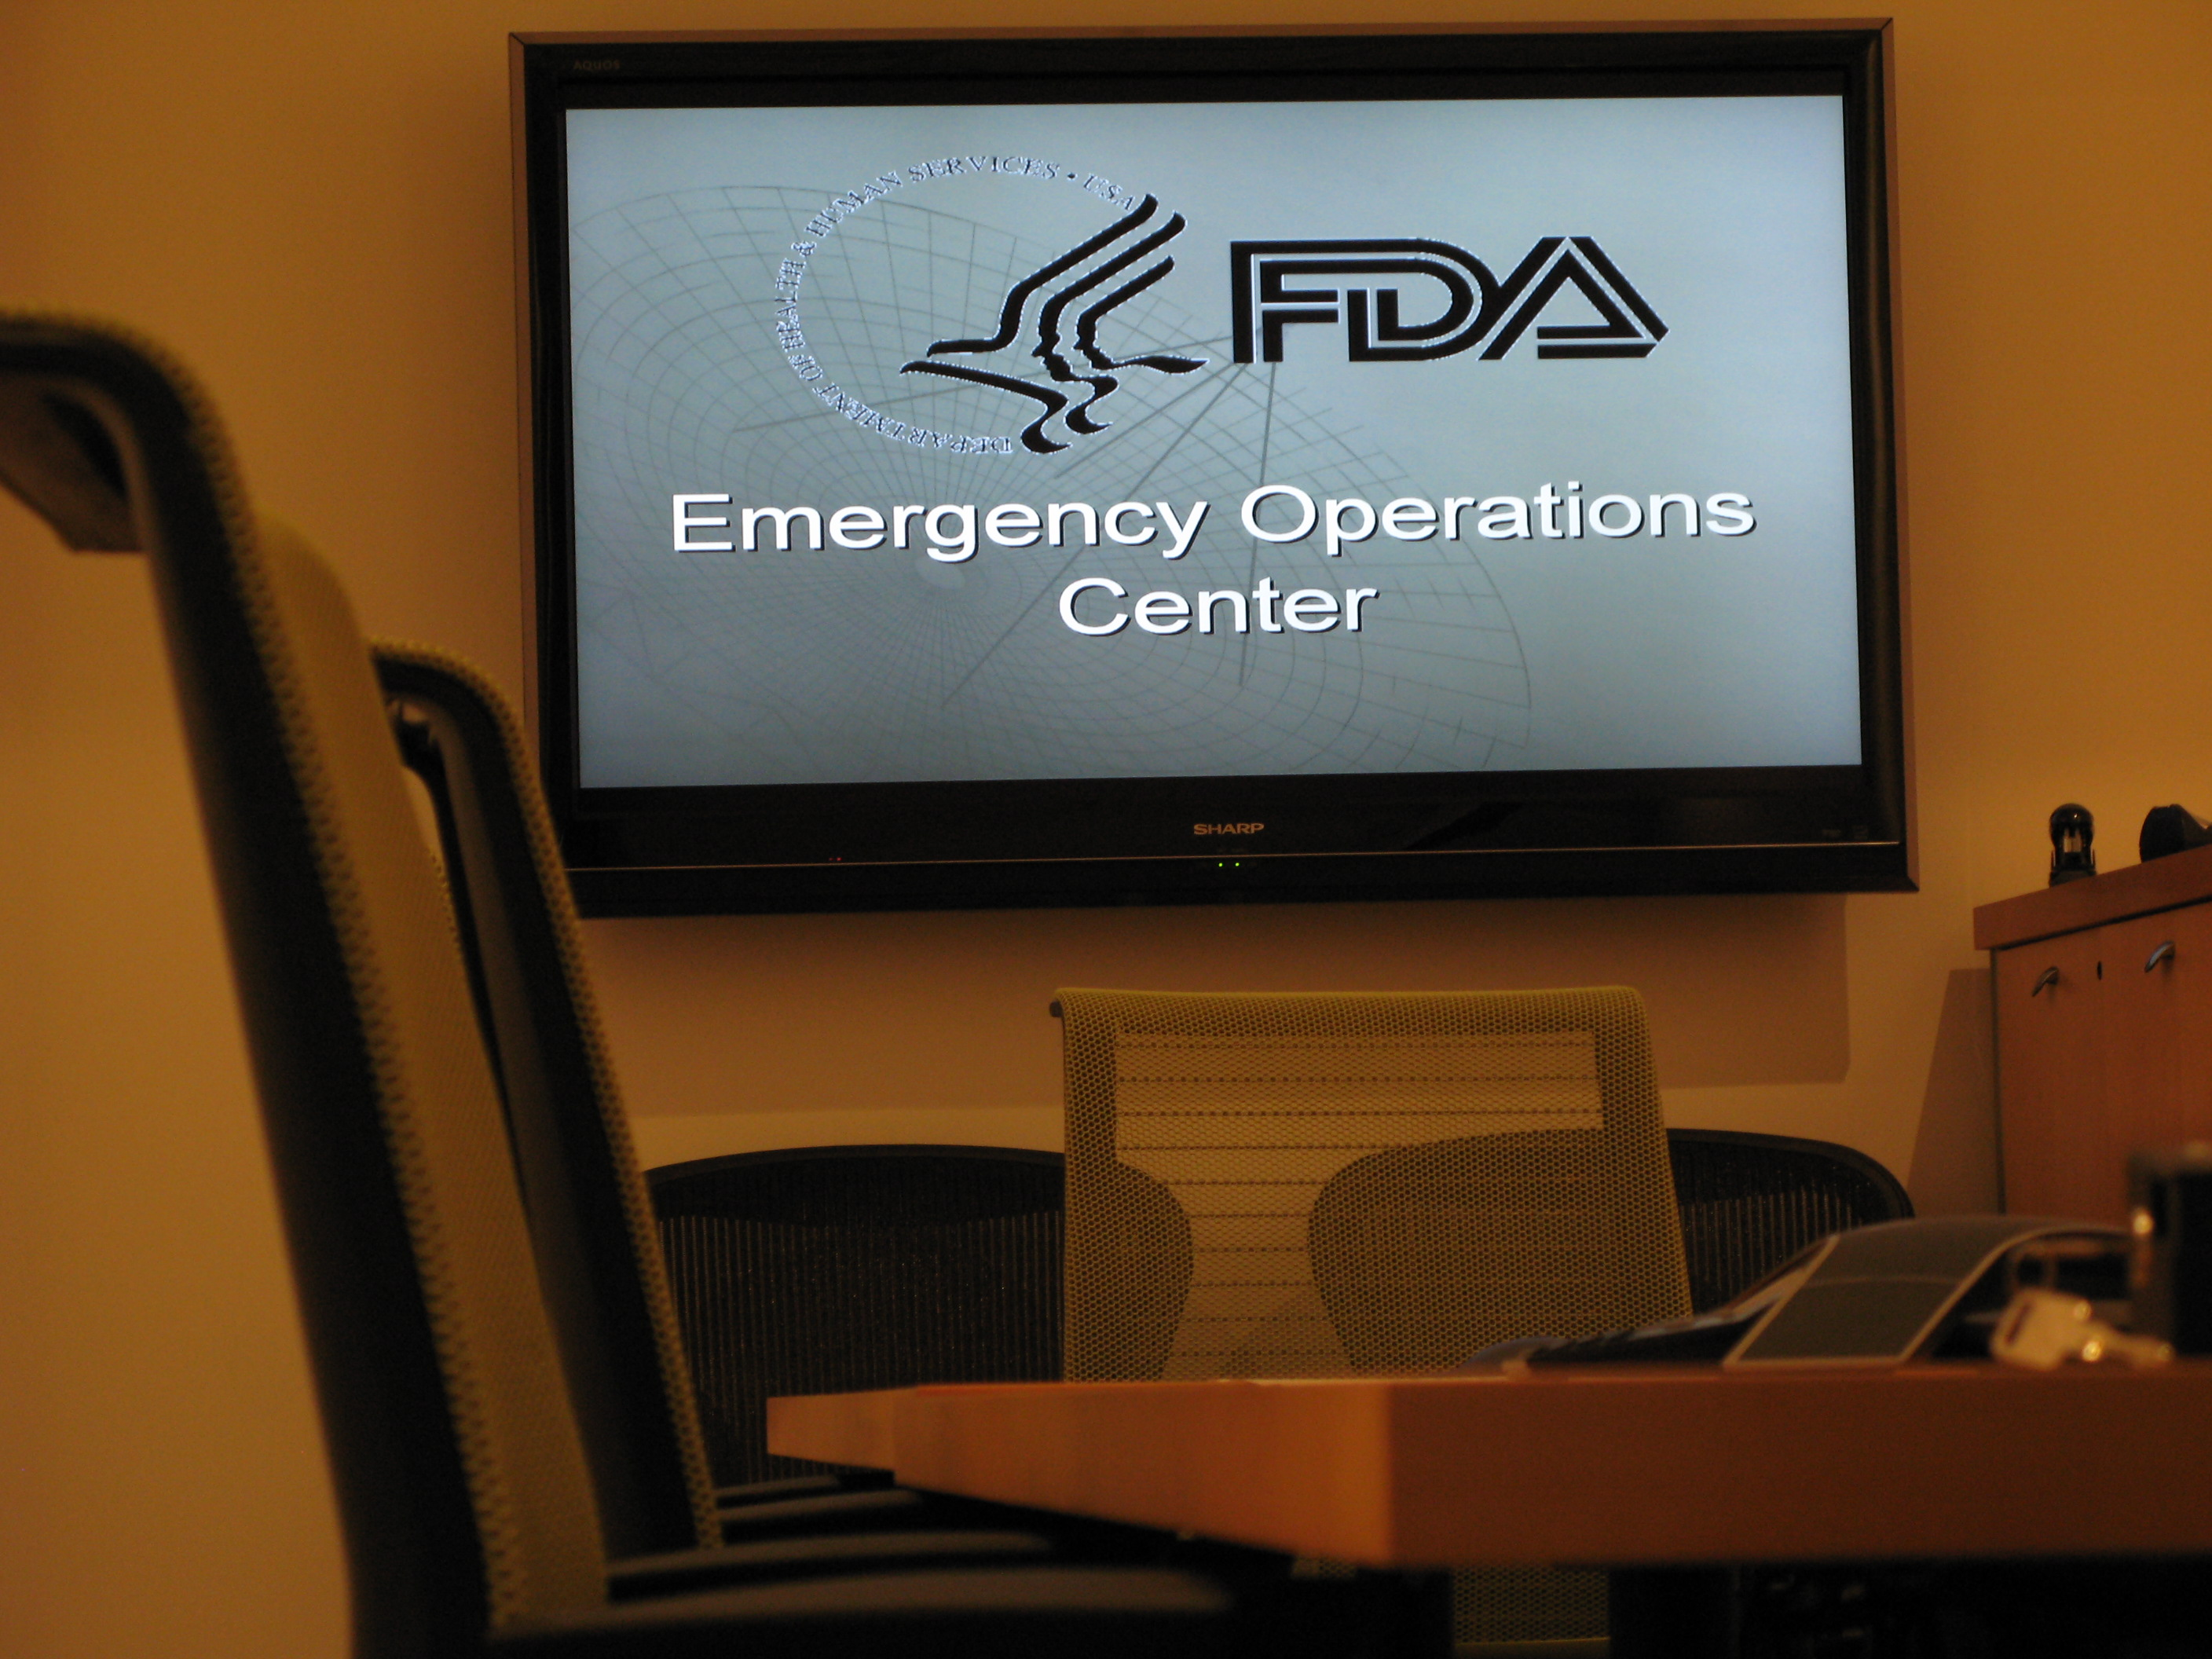 Photo of screen and chairs in the emergency operations center of the FDA